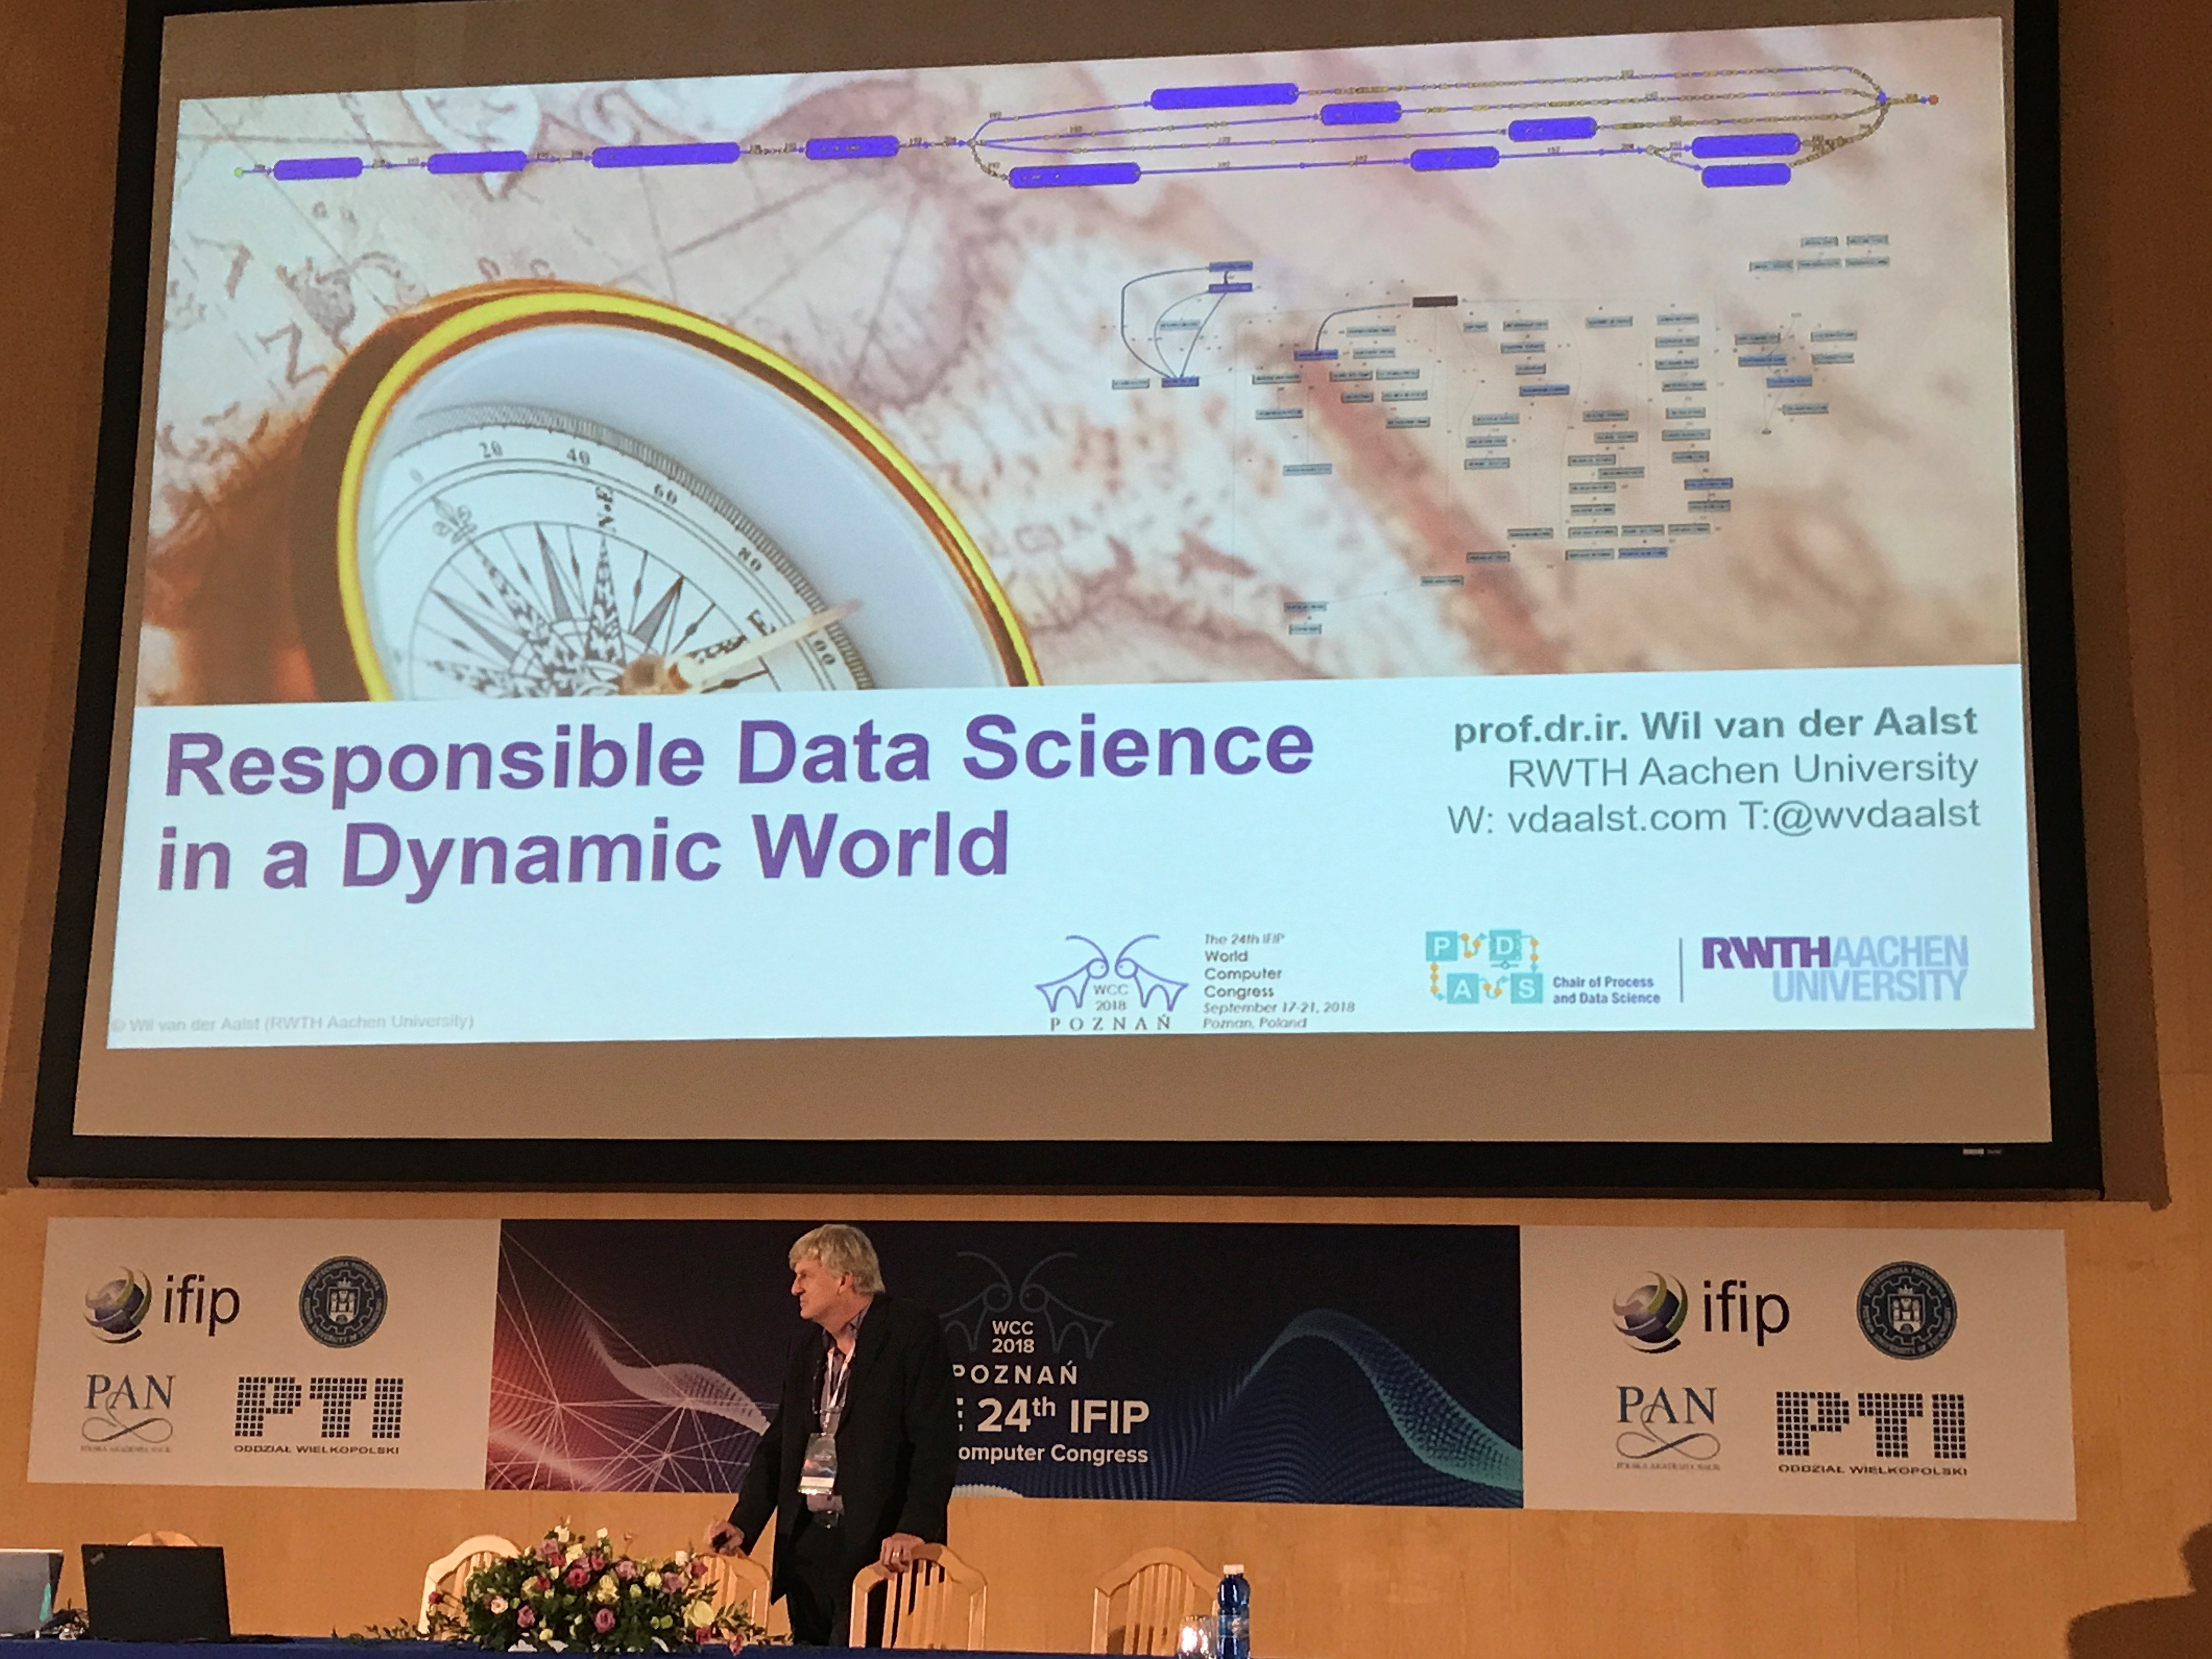 IFIP Shines in Poland